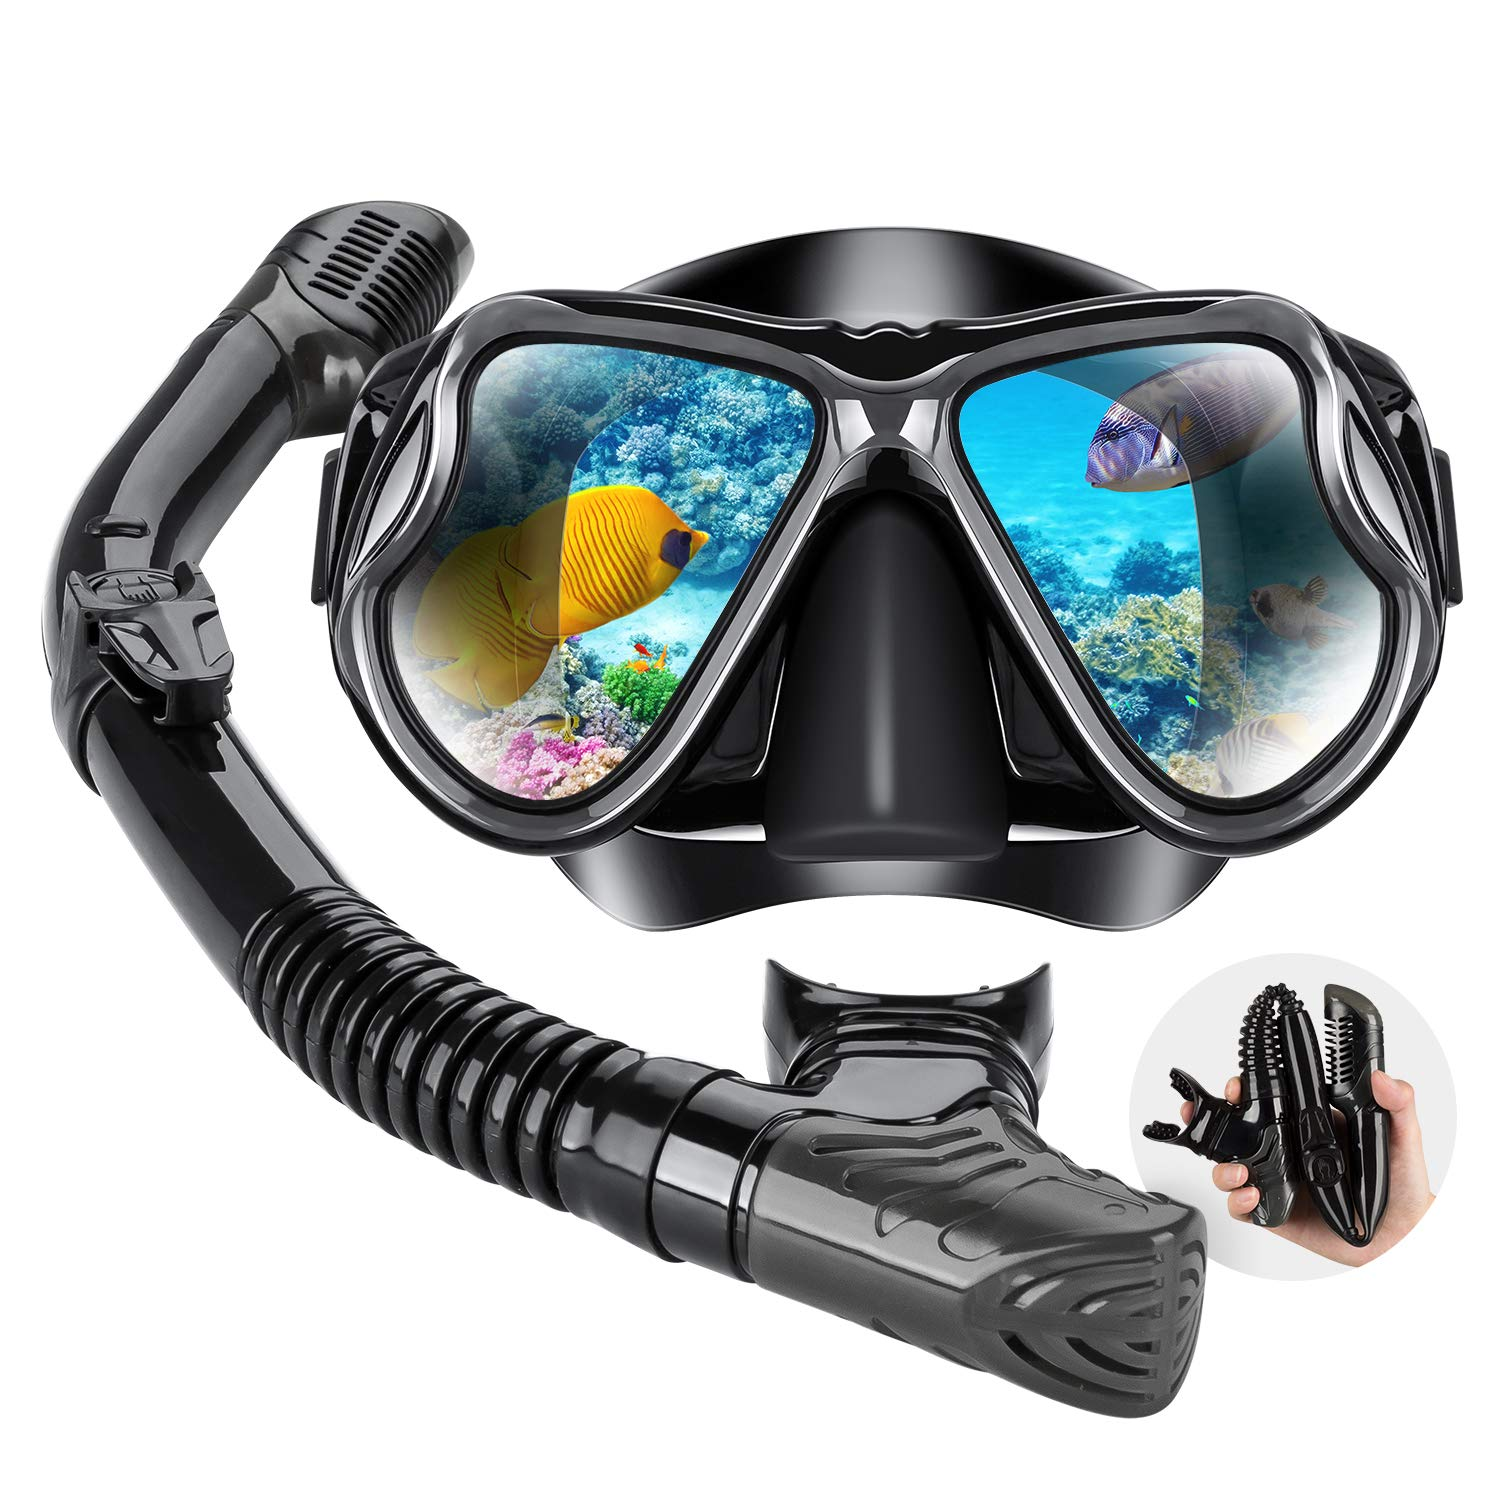 Dry Snorkel Mask Set Snorkeling Gear - Foldable Dry Snorkel Set with Dry-wet Switchable Float Valve, Purge Valve Tube, Anti Fog 180 Panoramic Silicone No Leak Seal Mask for Adults and Youth by AOMAIS